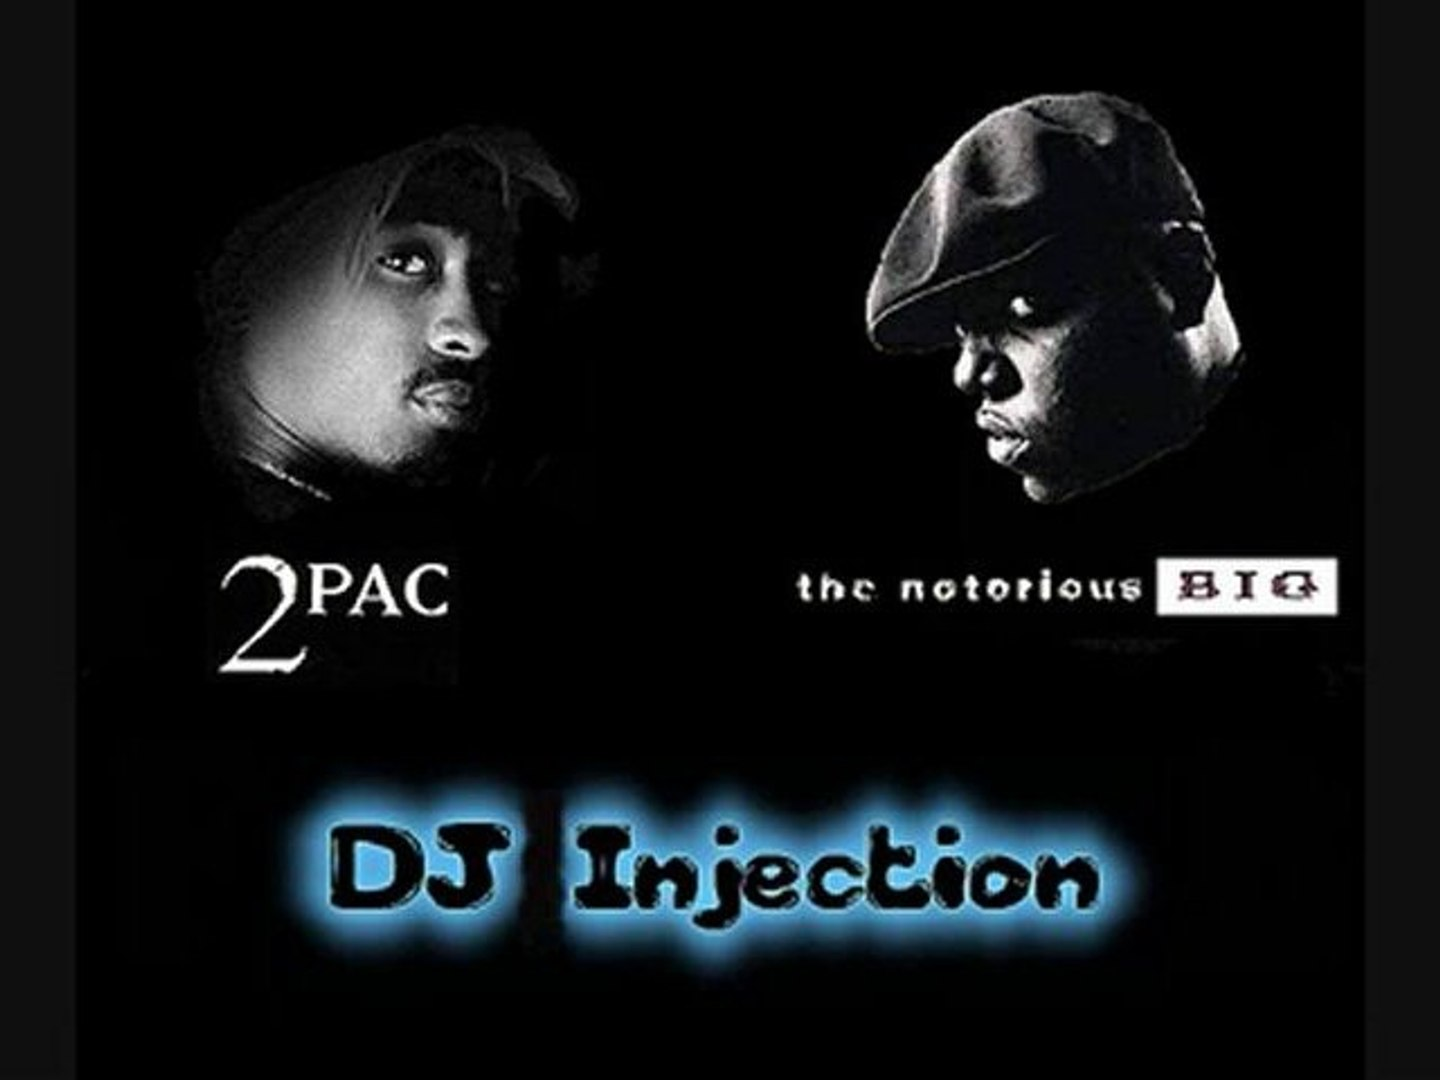 2pac feat Biggie - Do For Love ( Injection Rmx 2010 )